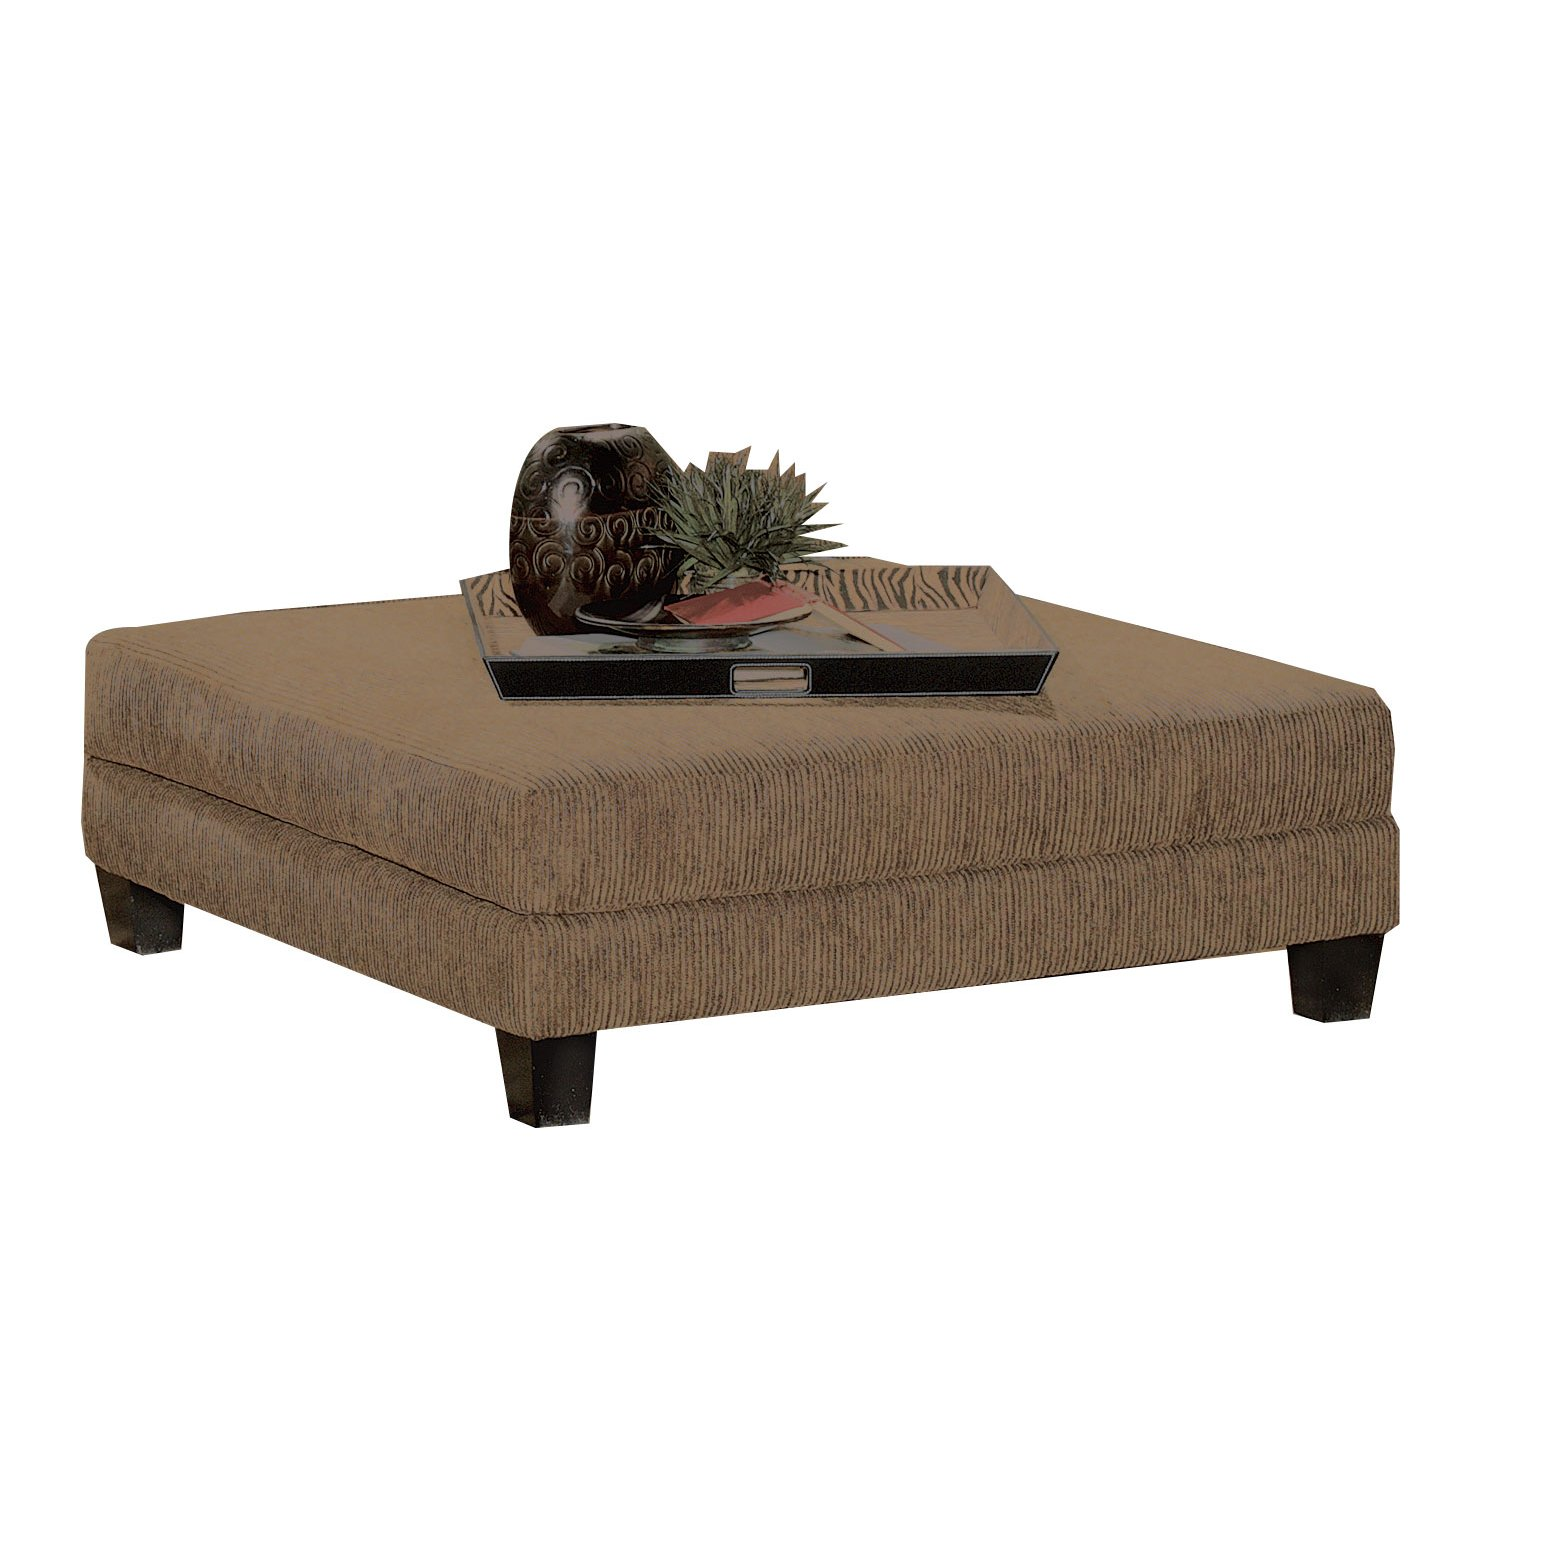 Fabric Ottomans Furniture RC Willey